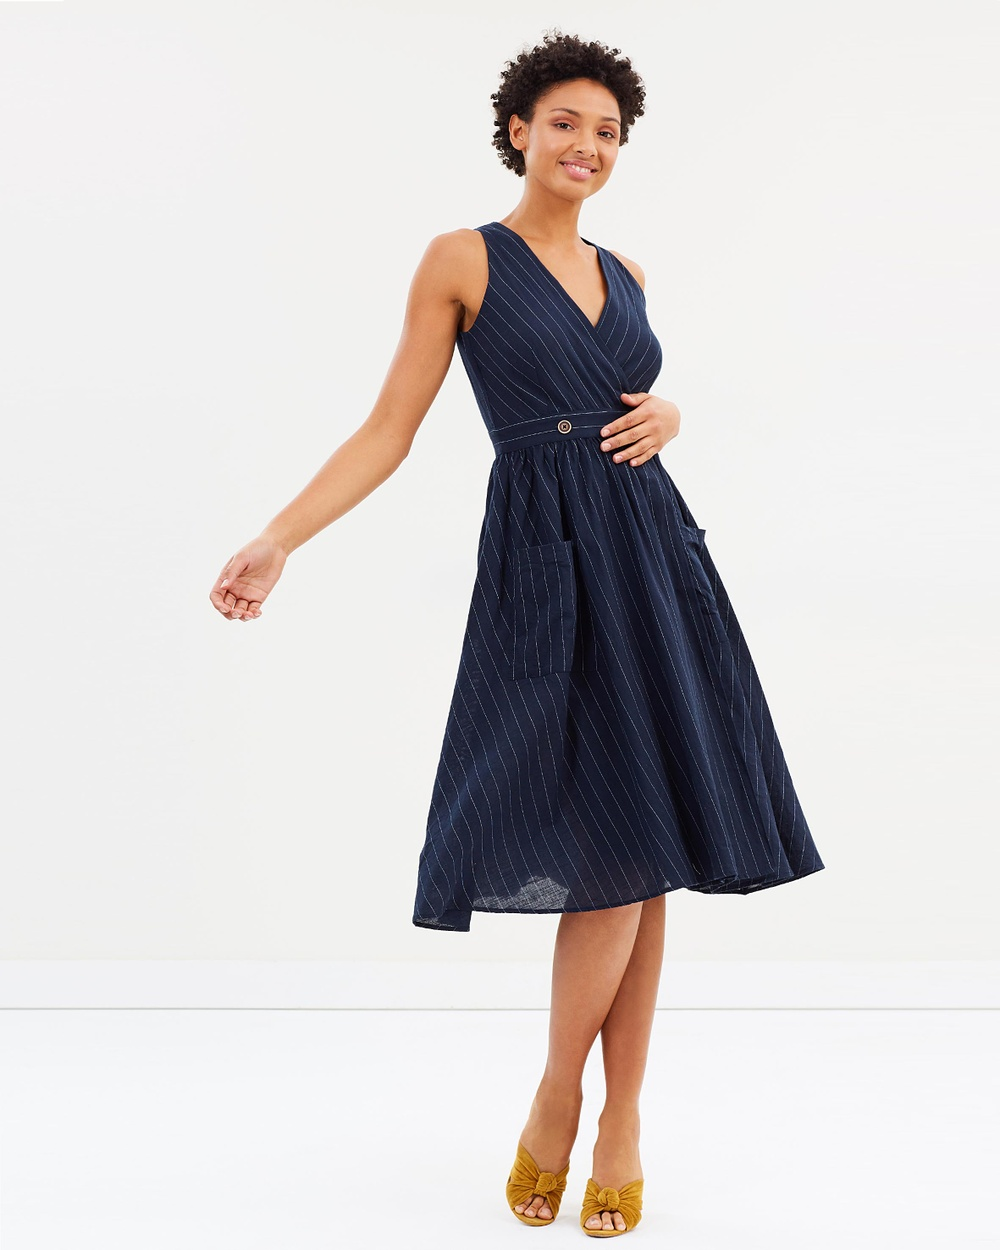 M.N.G Sally Dress Dresses Navy Sally Dress